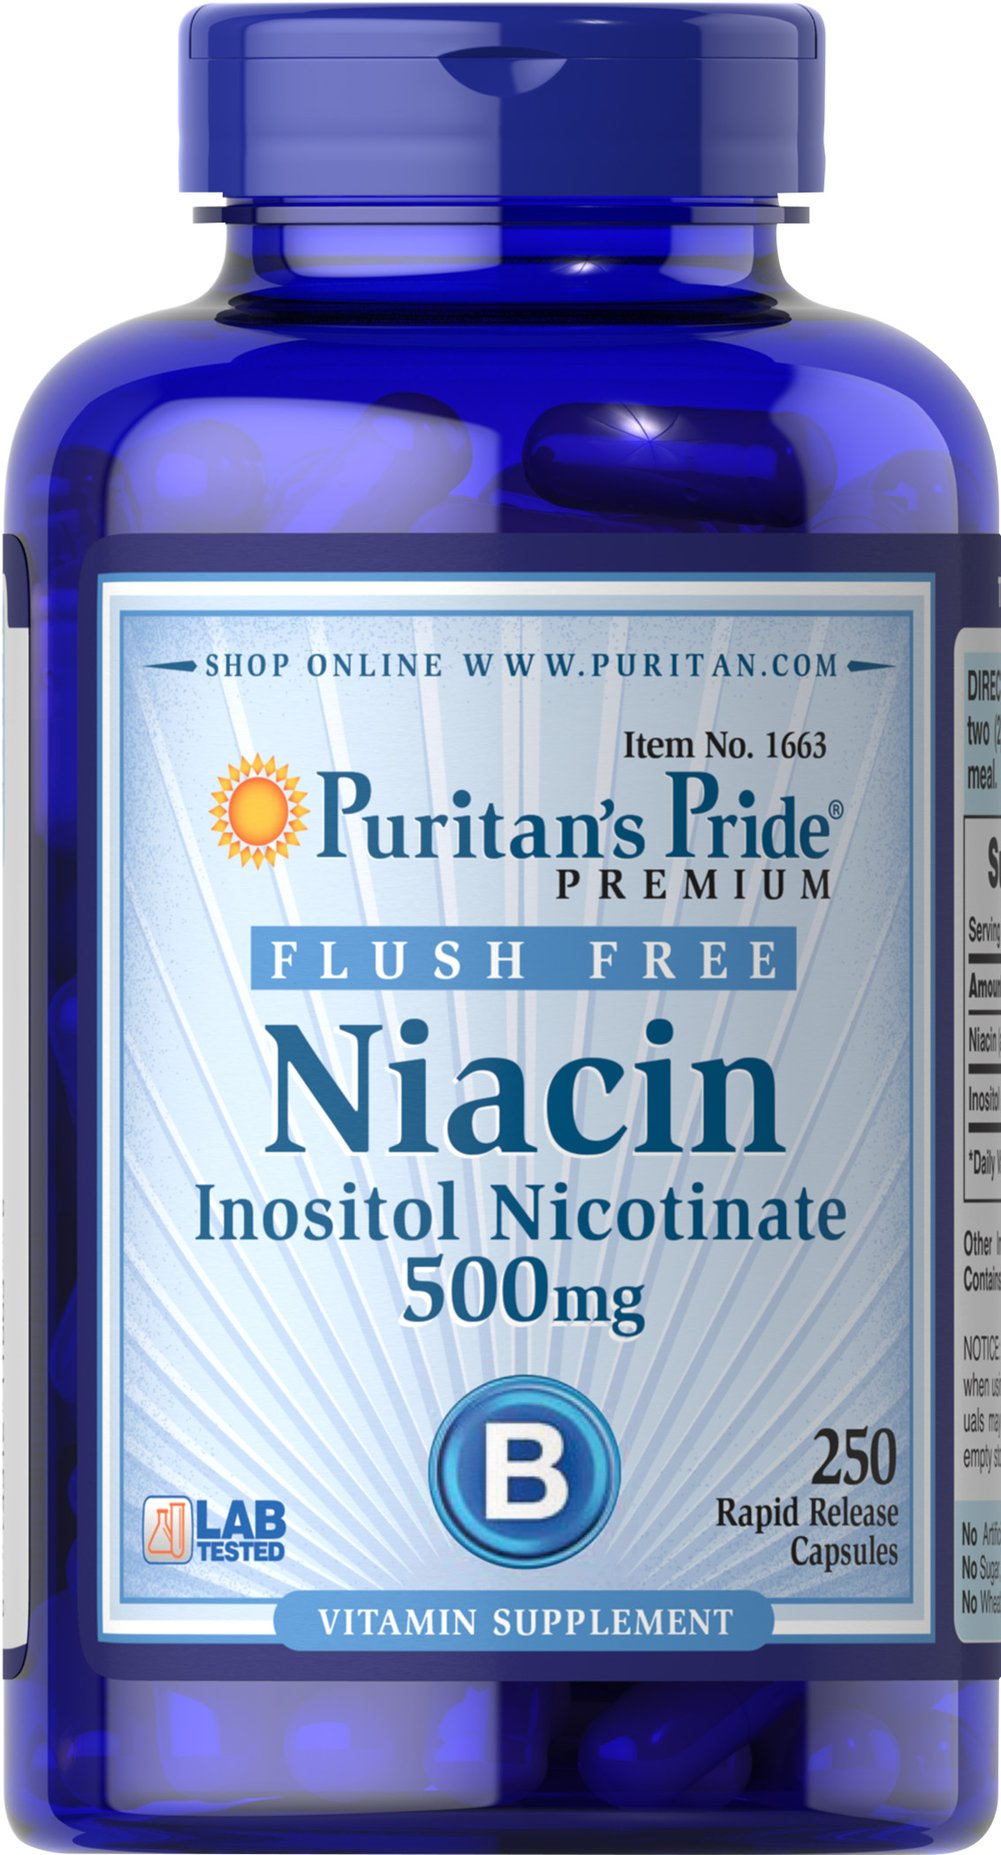 Flush Free Niacin 500 mg <p>Supports heart and cardiovascular wellness**</p><p>Promotes healthy circulation**</p><p>Contributes to energy metabolism**</p><p>Helps metabolize carbohydrates and protein**</p><p>Laboratory Tested</p> 250 Capsules 500 mg $35.99